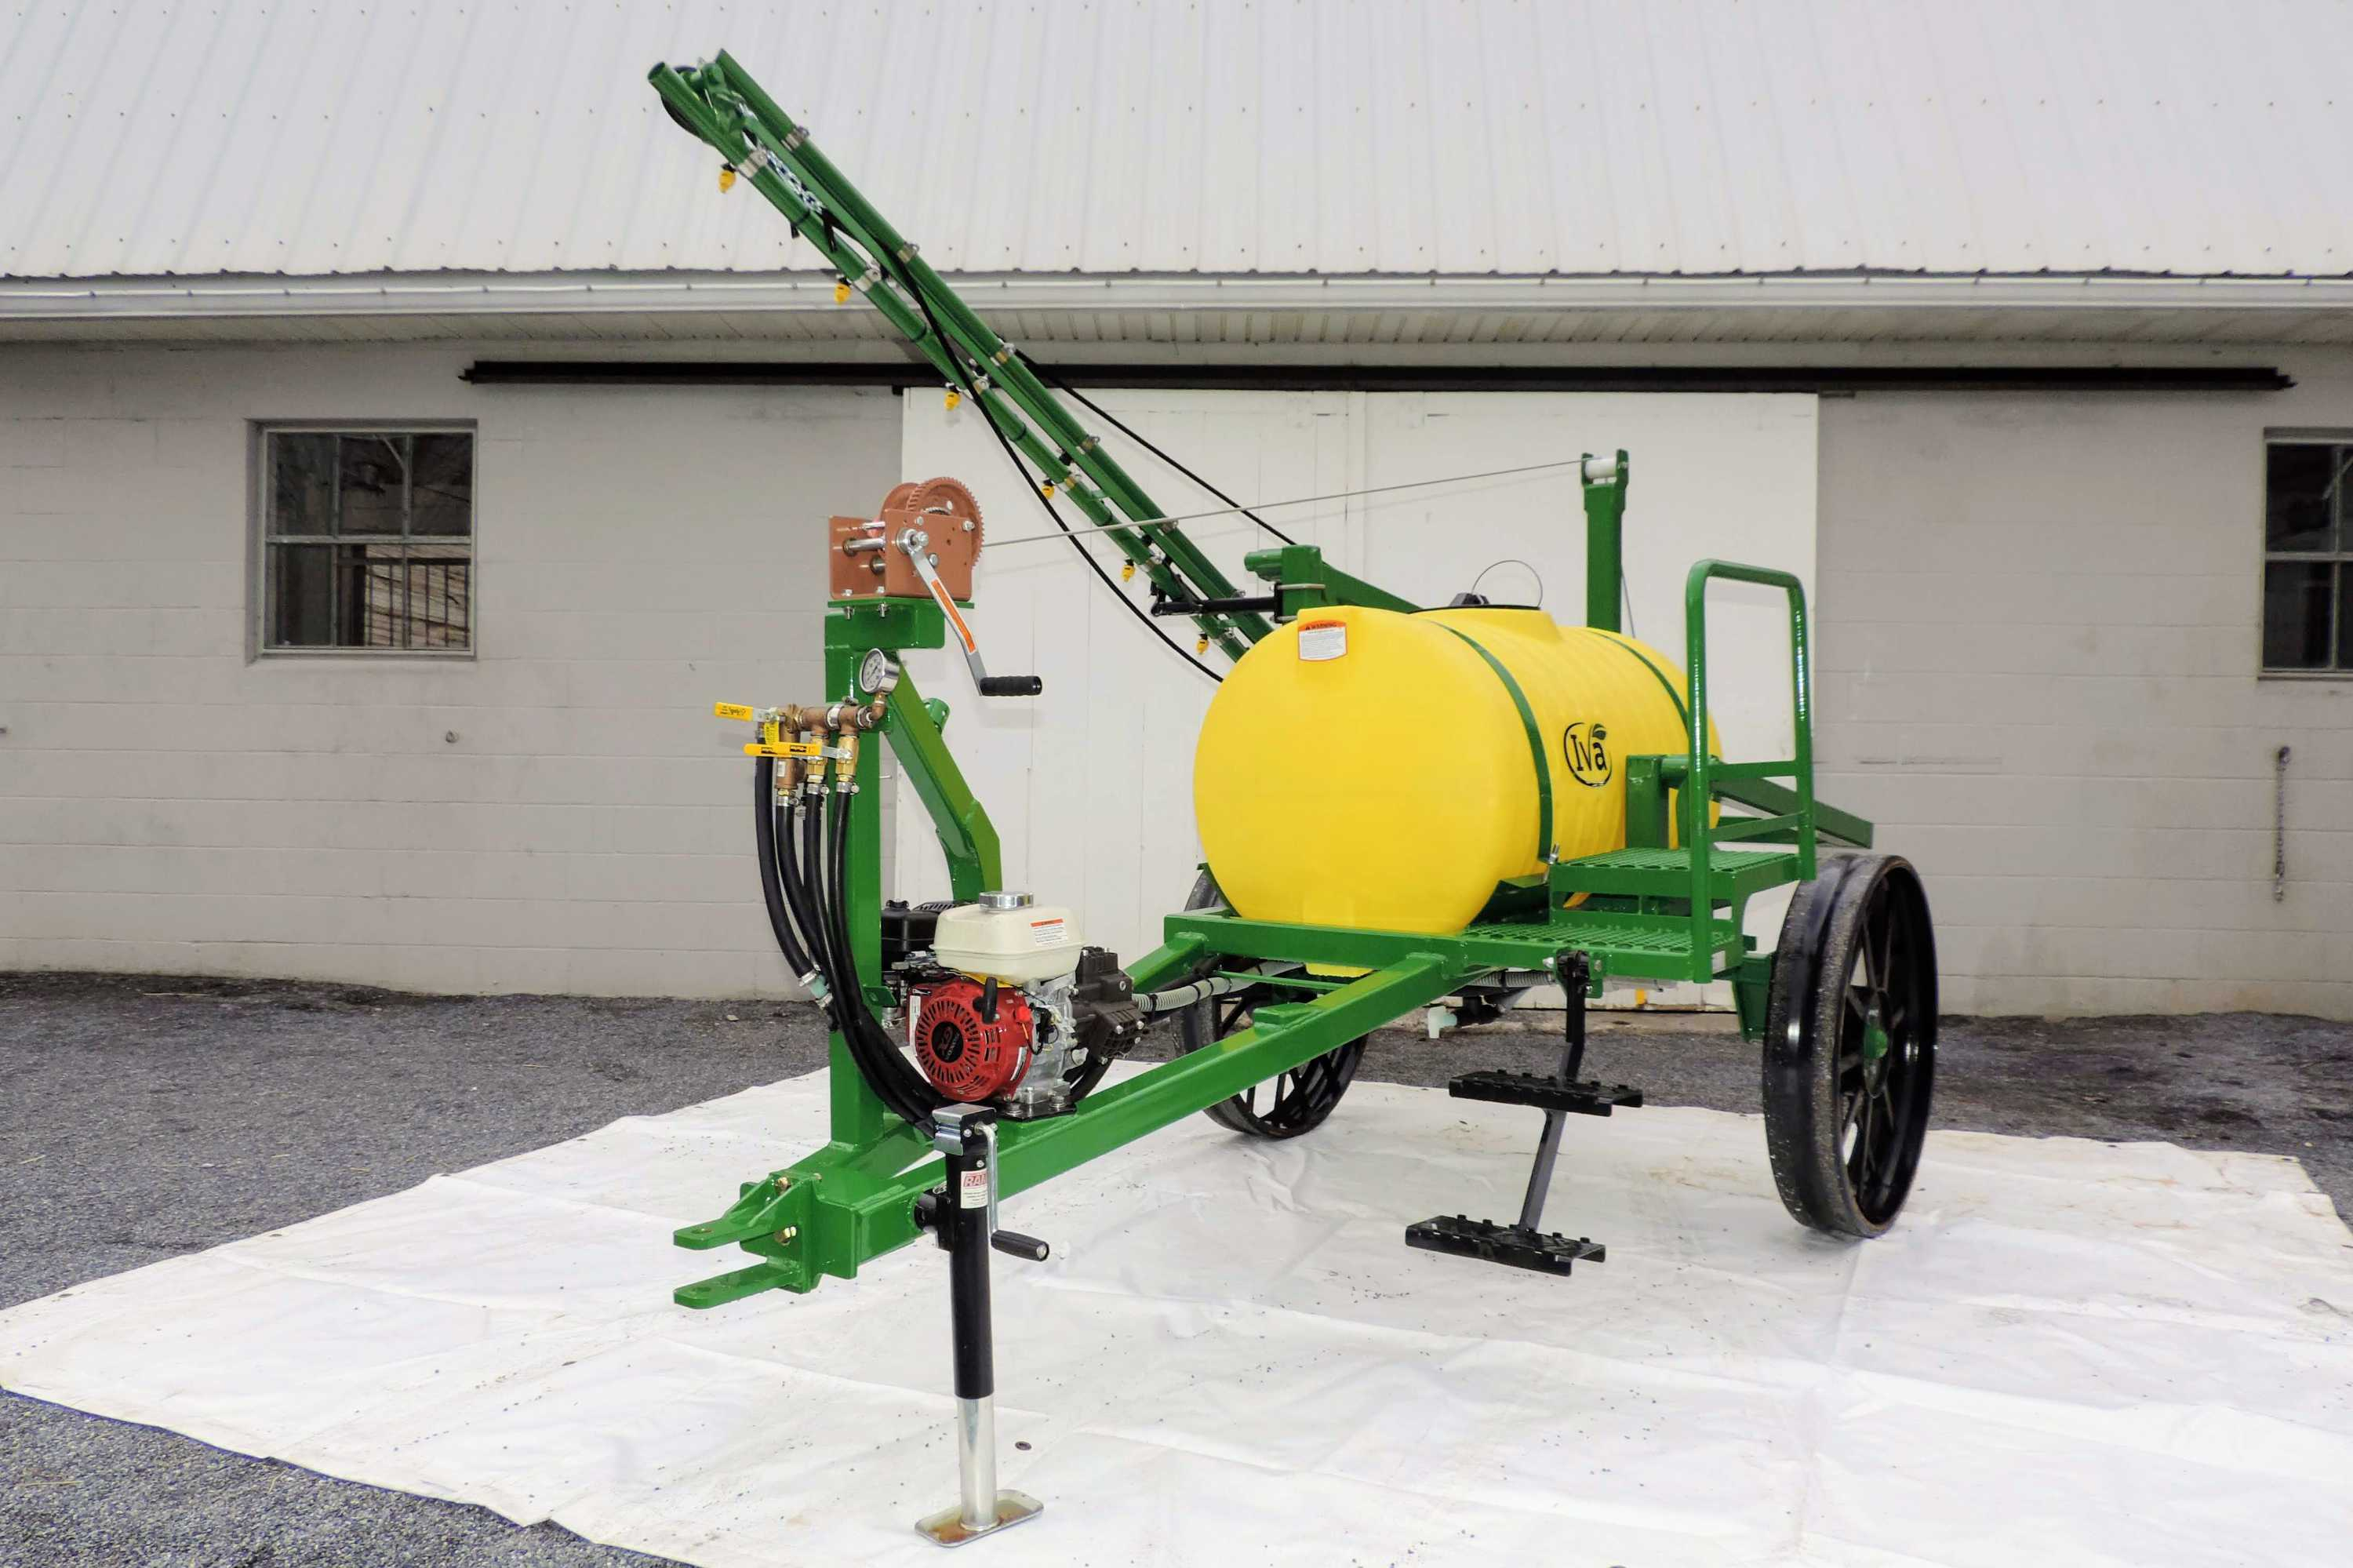 Horse-drawn Trailer Produce Sprayers